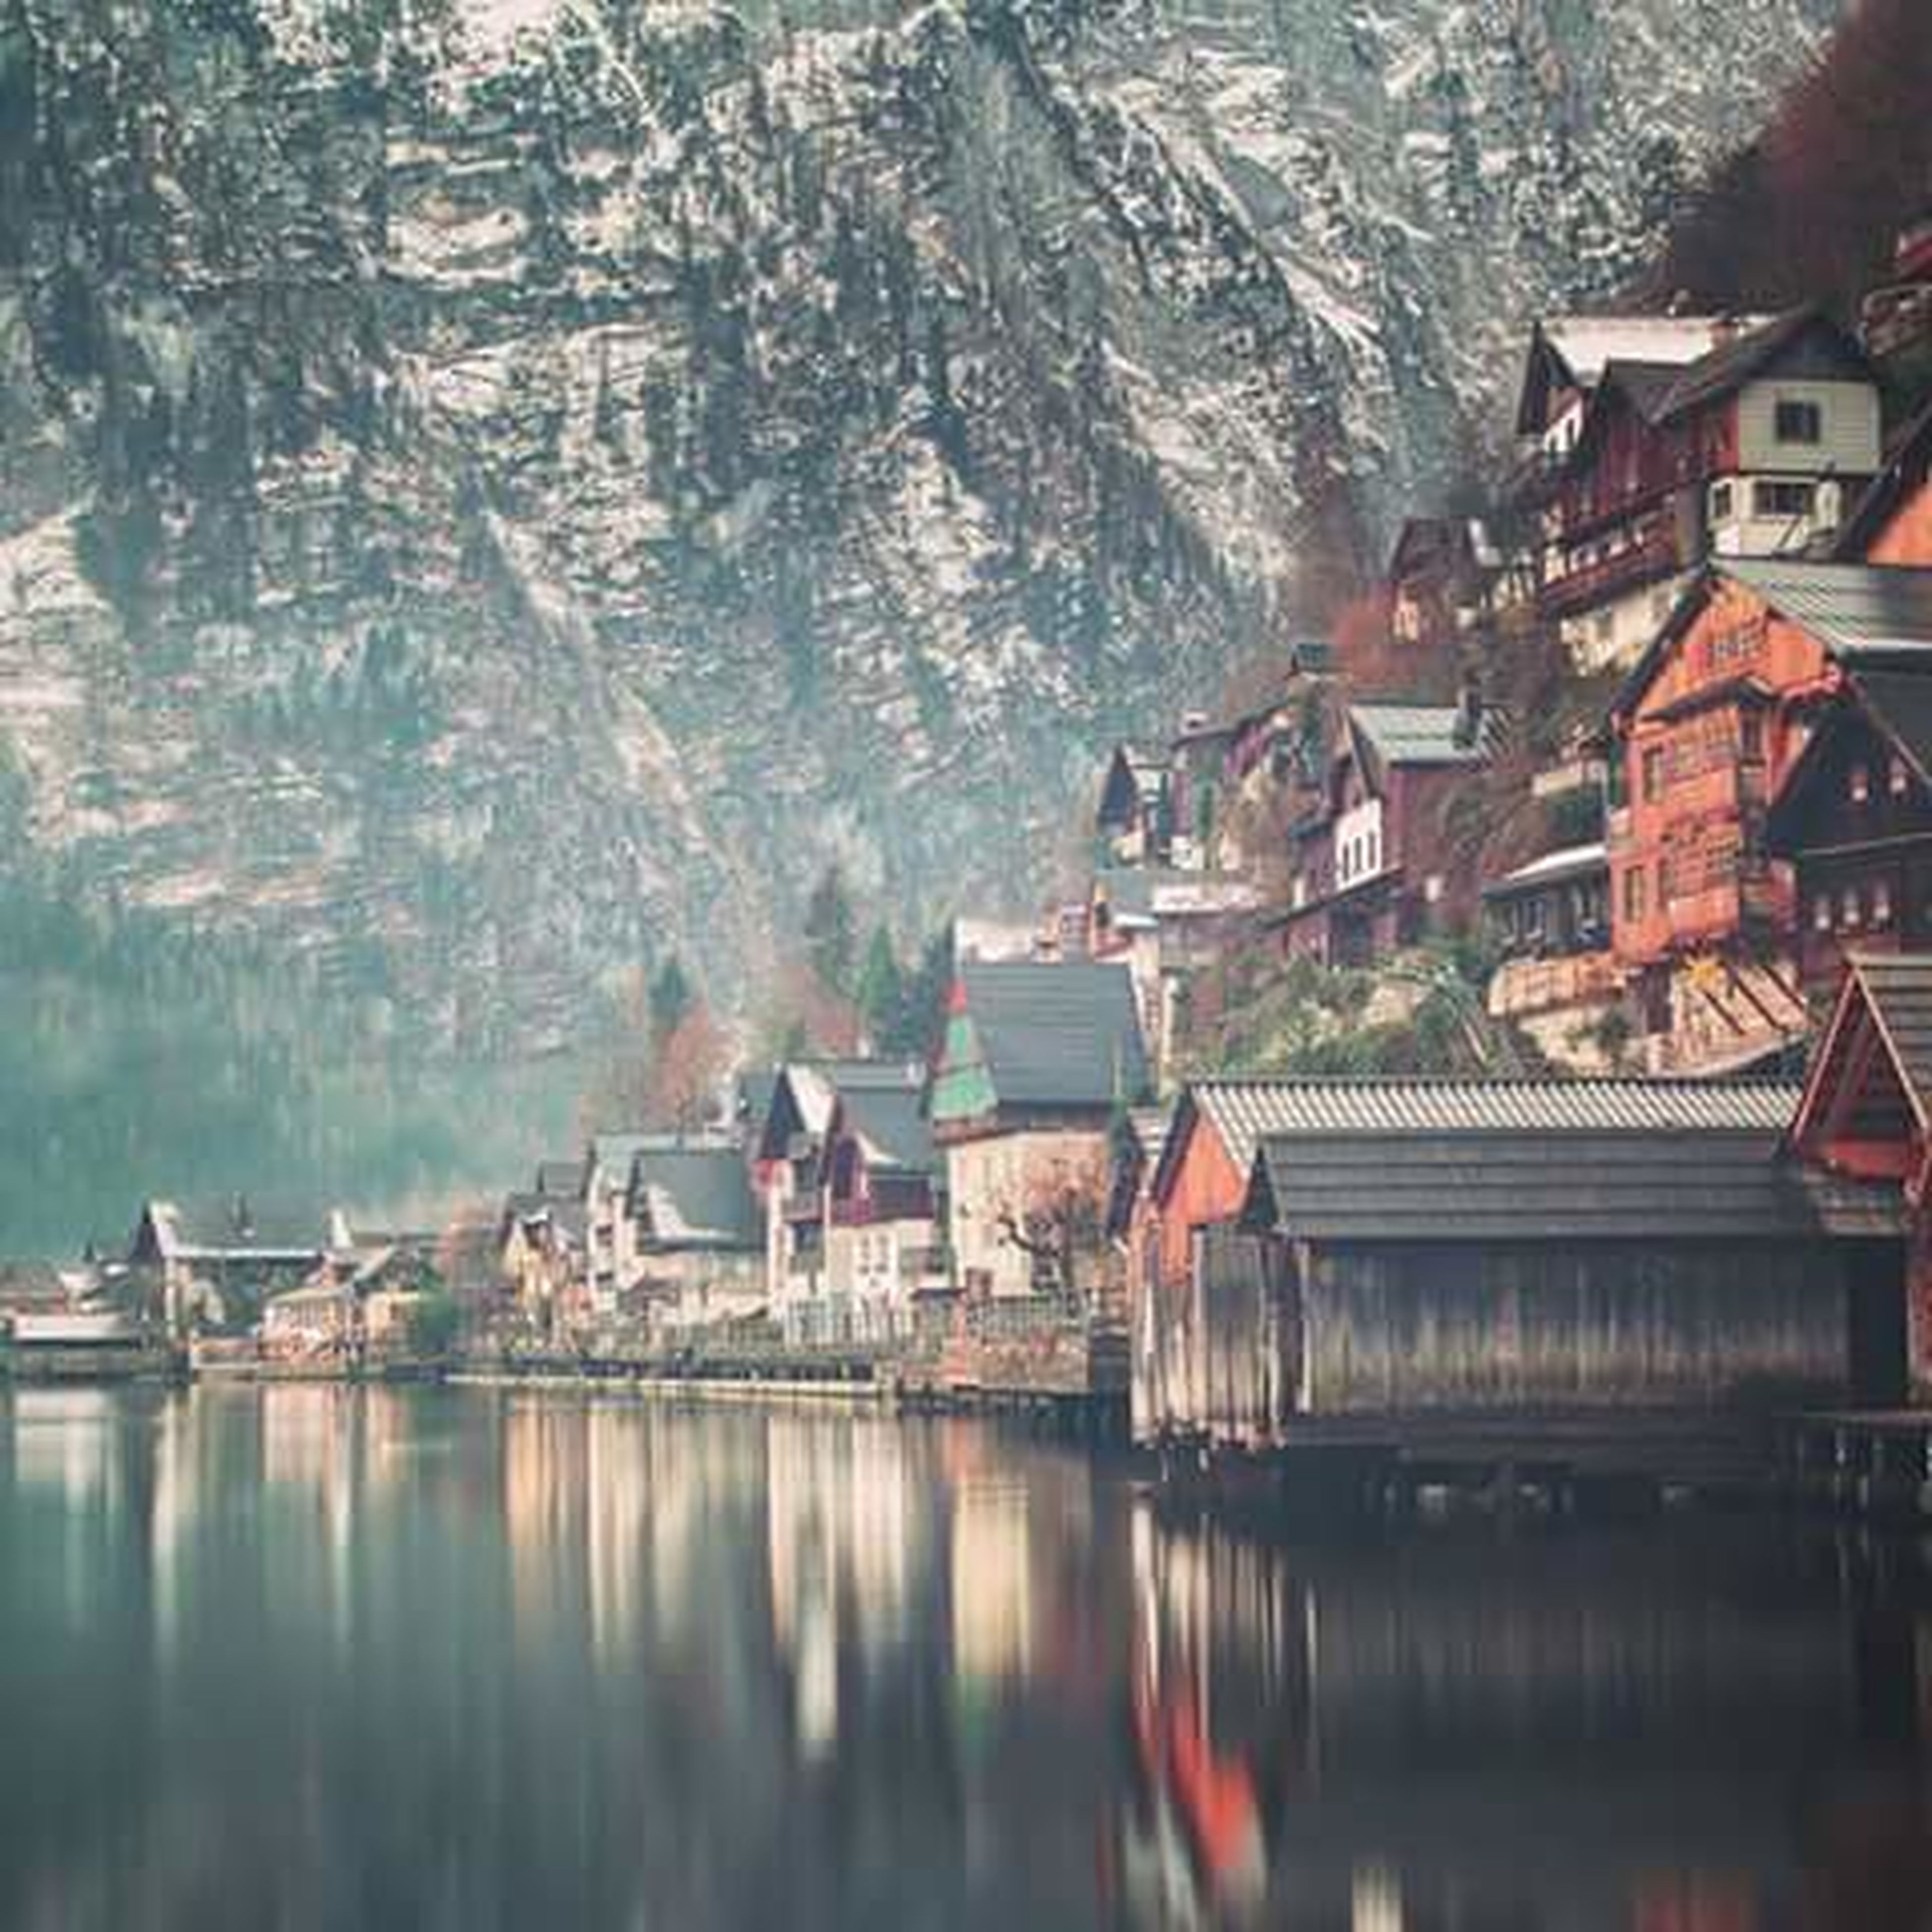 water, building exterior, architecture, built structure, waterfront, reflection, house, residential structure, river, lake, residential building, town, tree, canal, mountain, nautical vessel, boat, nature, transportation, day